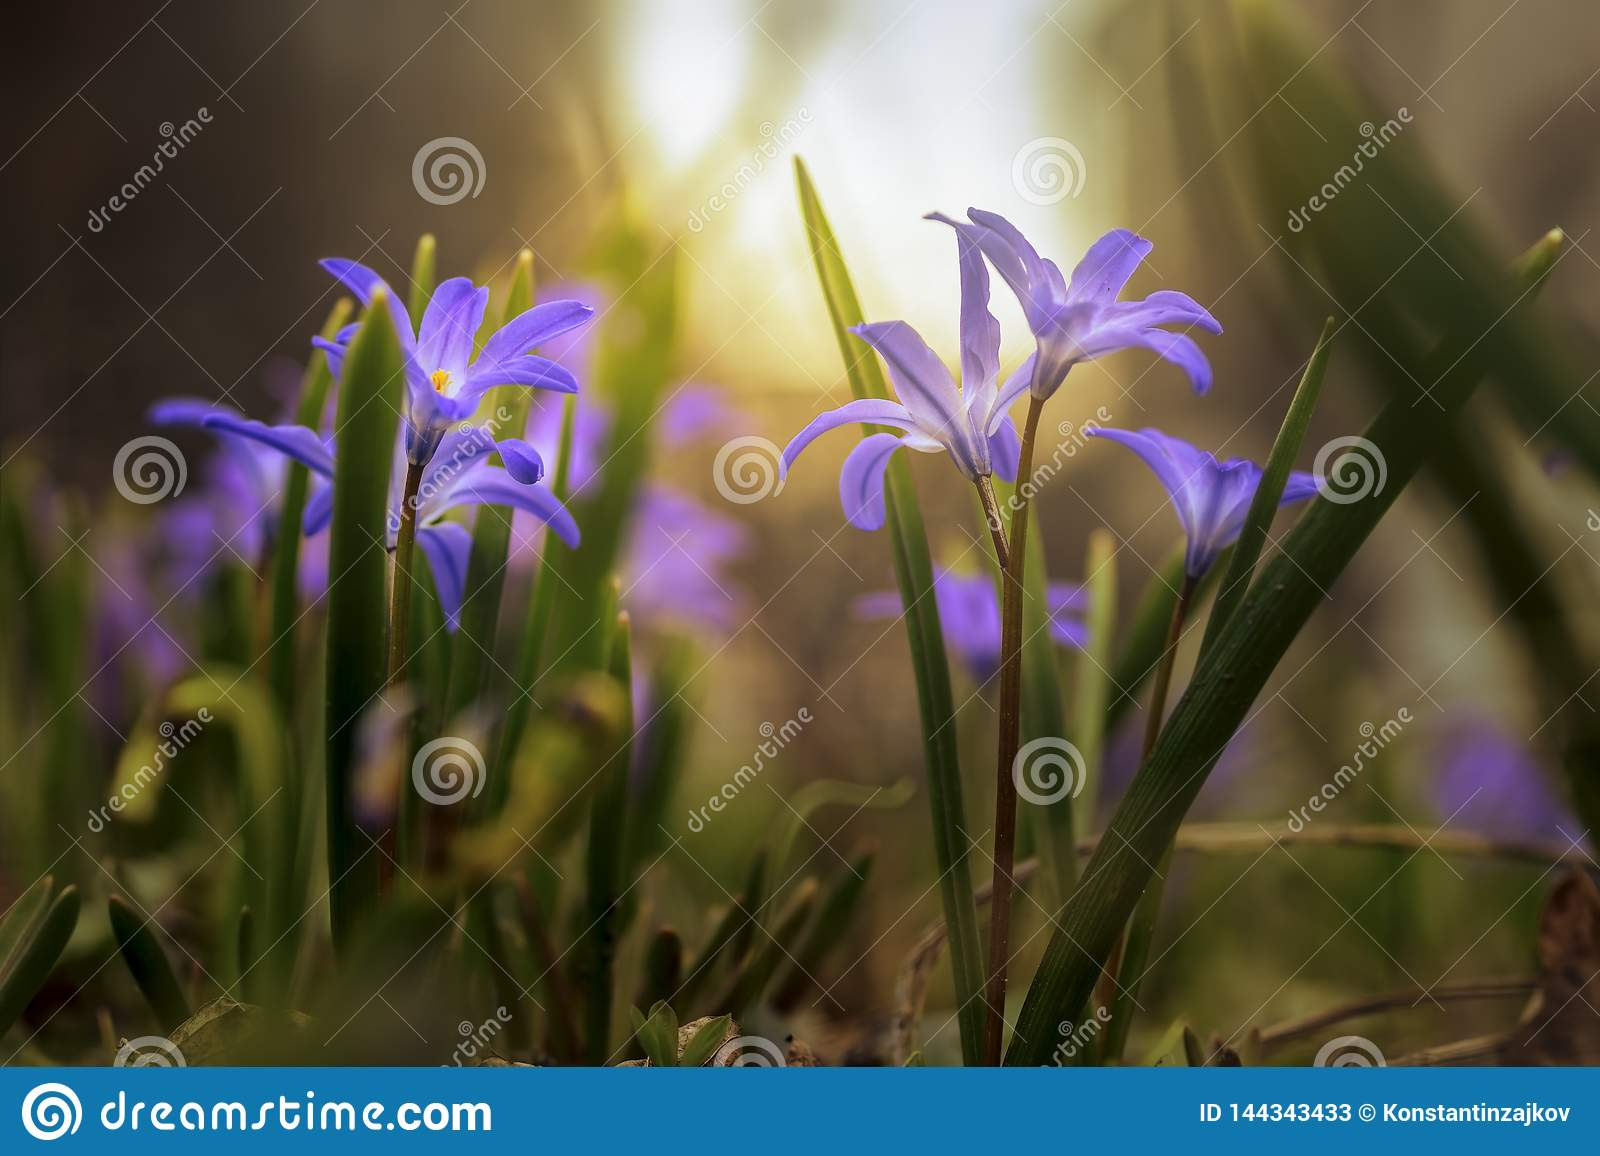 Spring wild blue flowers on mystical, fabulous meadow in sunny light. Dreamy gentle artistic image